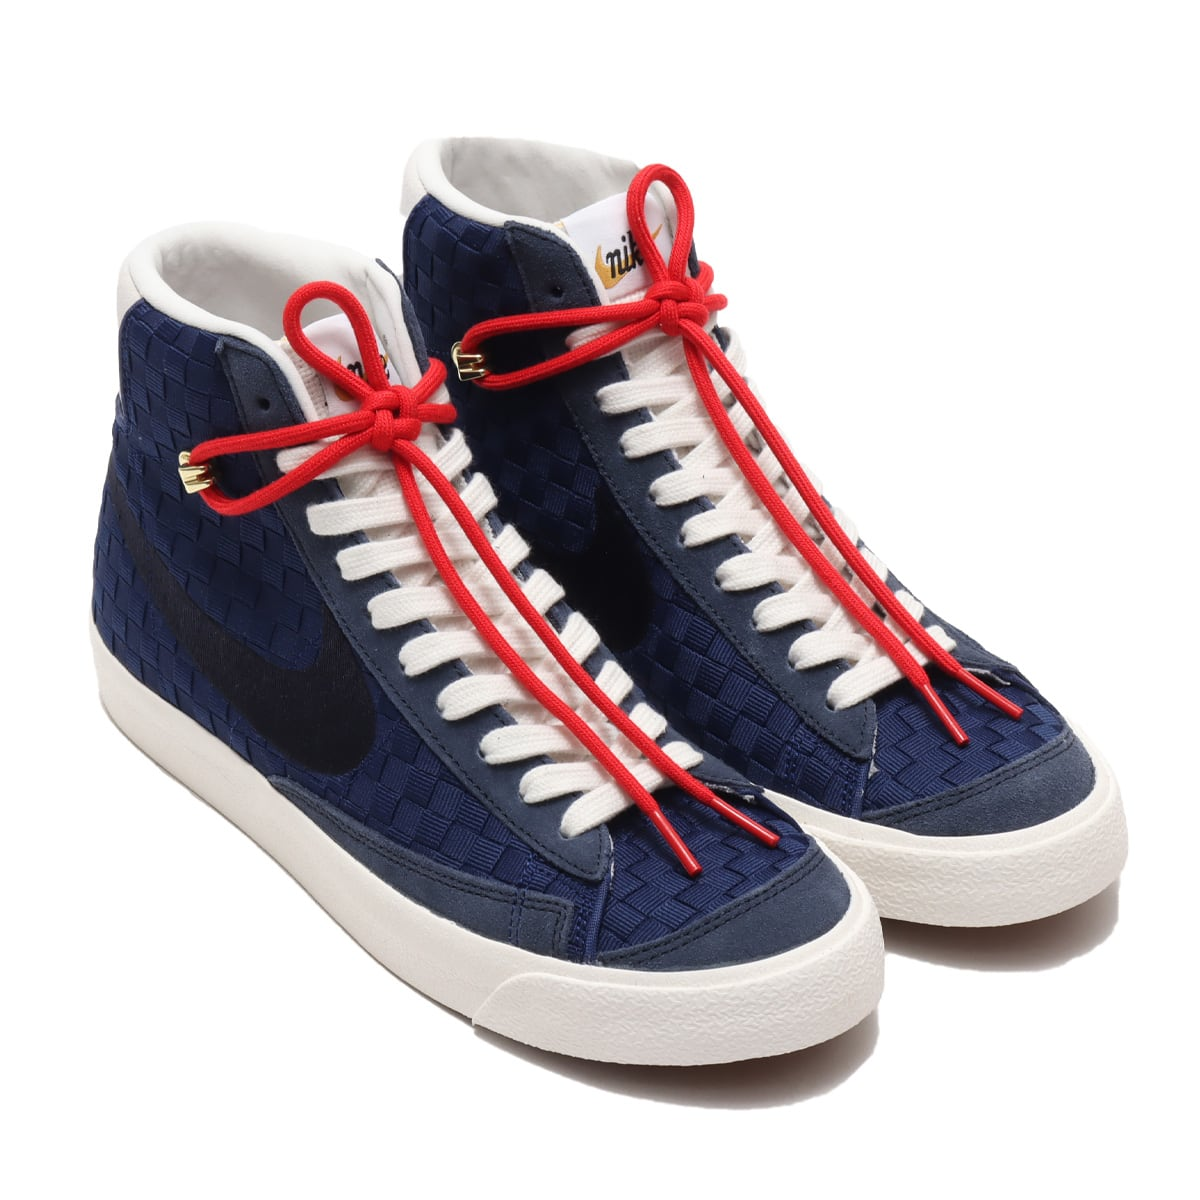 NIKE BLAZER MID '77 VNTG BLUE VOID/OBSIDIAN-BLACKENED BLUE-SAIL 21SP-I